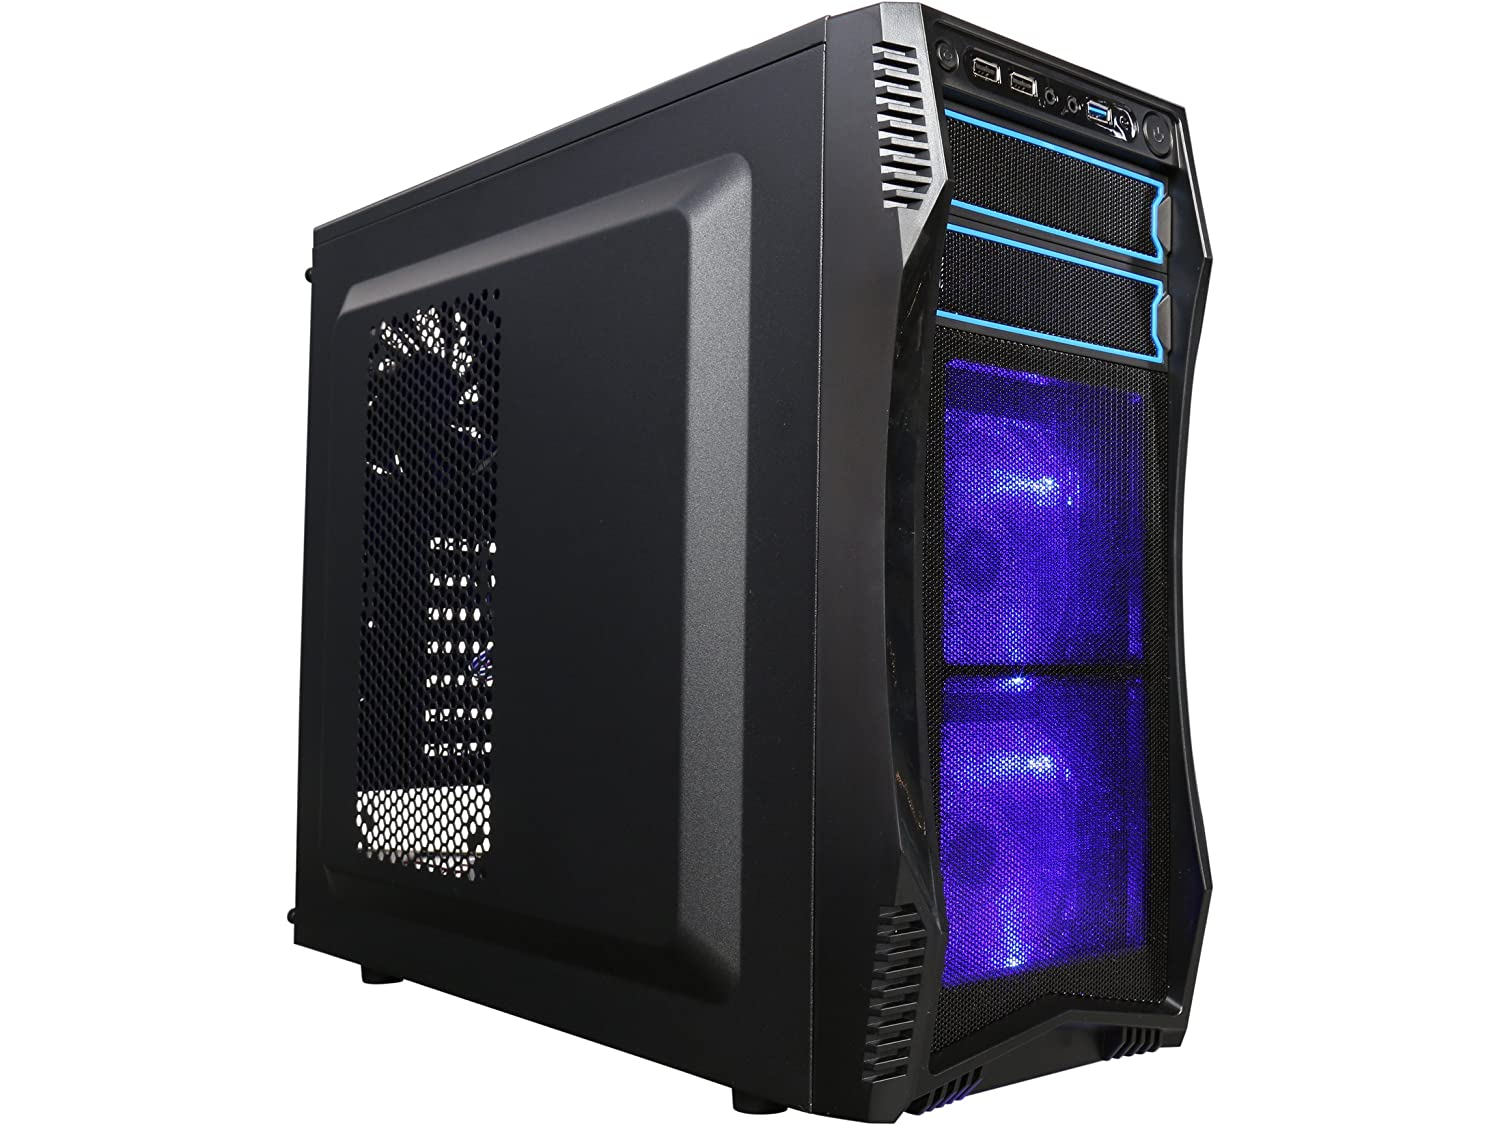 Best Gaming Computers 2020 Top 10 Best Mini Gaming PC Towers on the Market 2019 2020 on